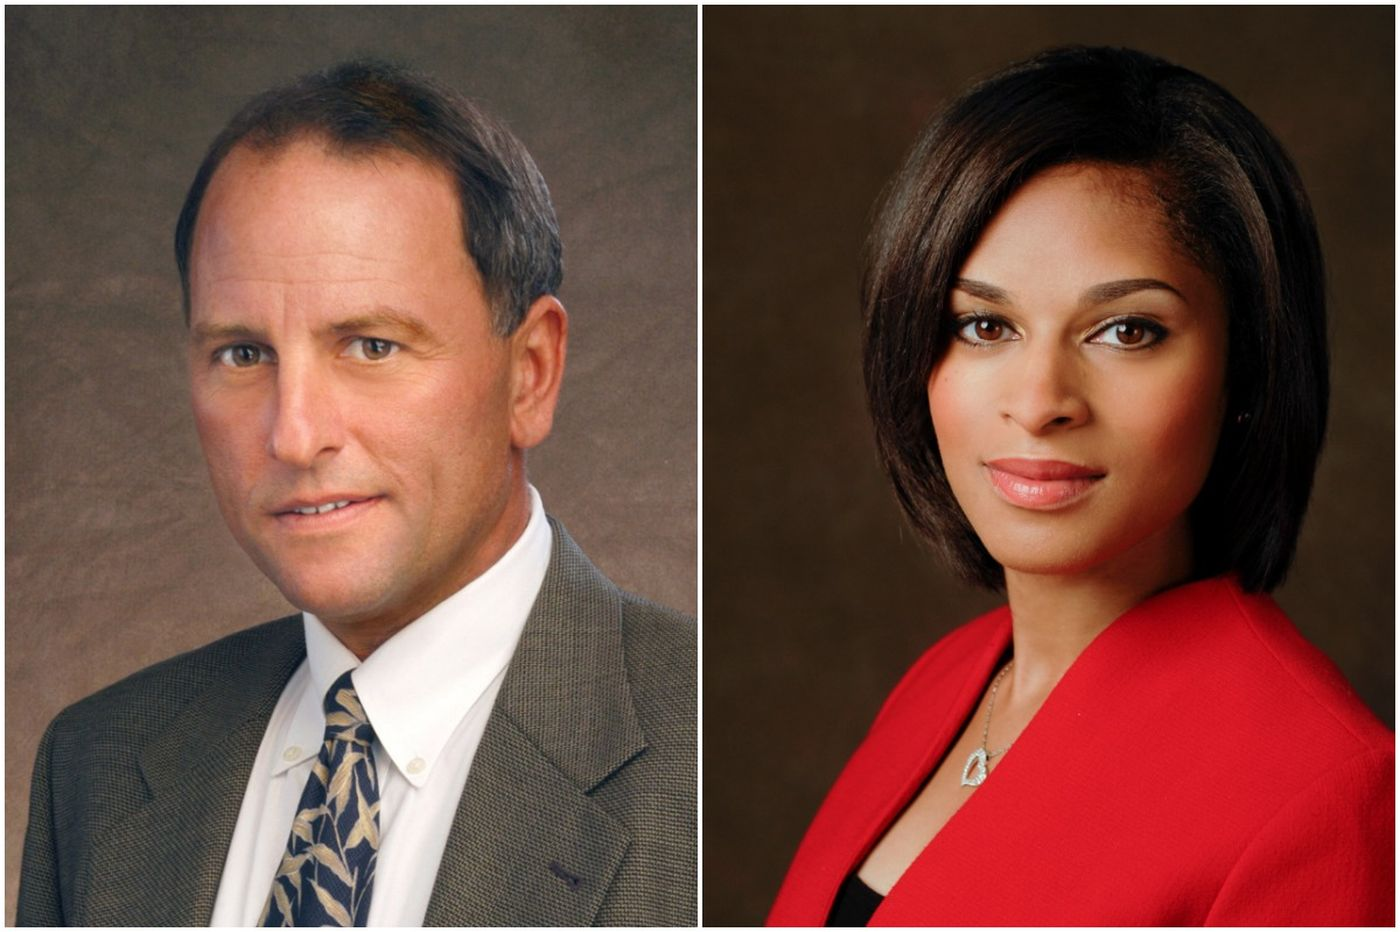 Jeff Fager in left and Jericka Duncan in right